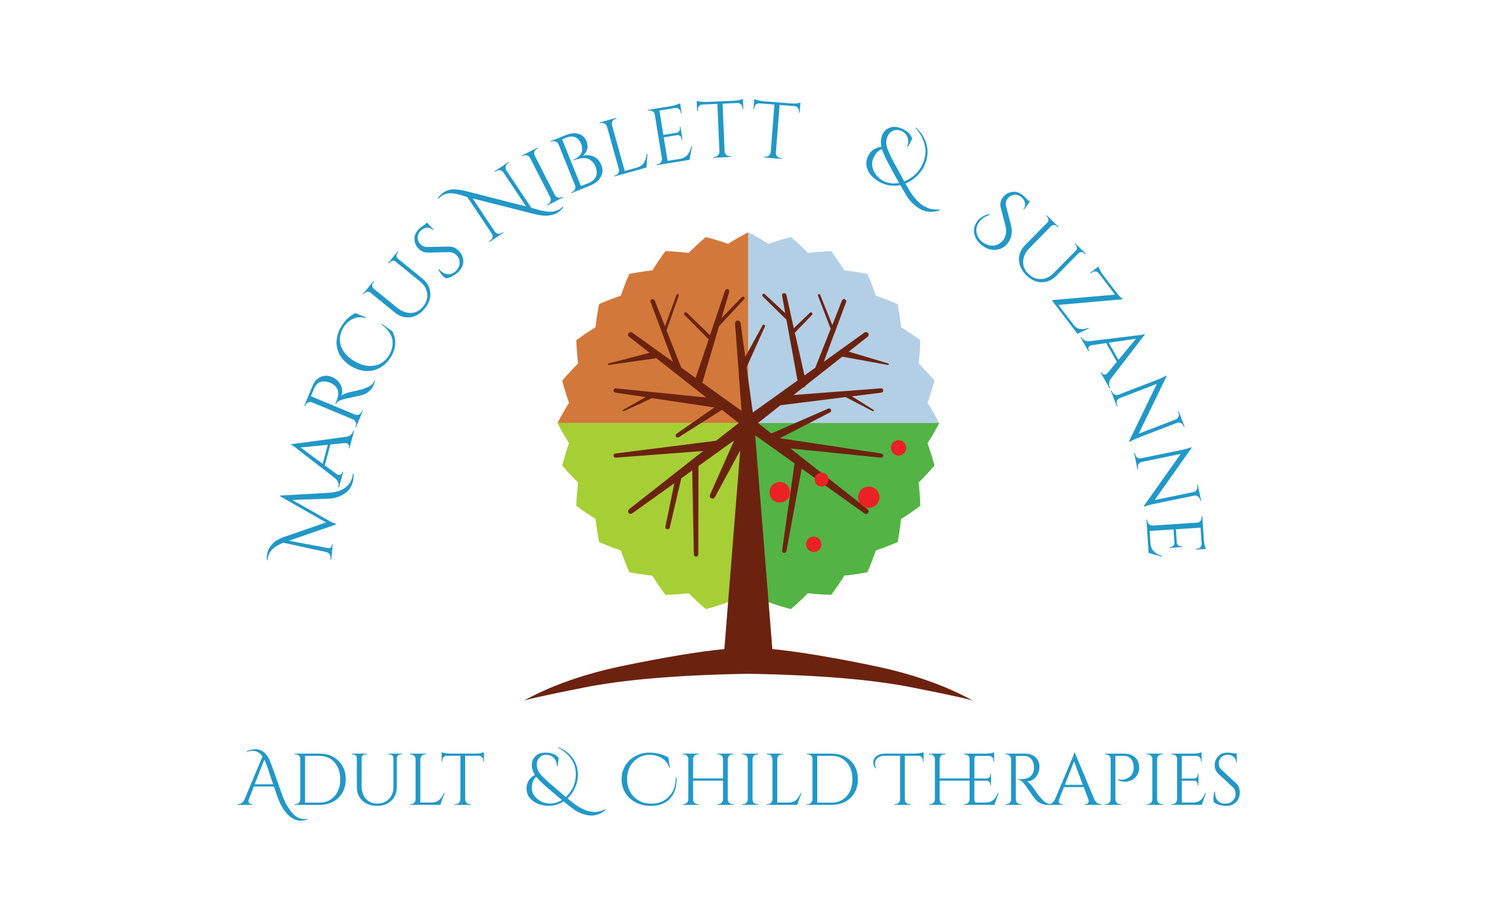 Marcus Niblett & Suzanne Therapies